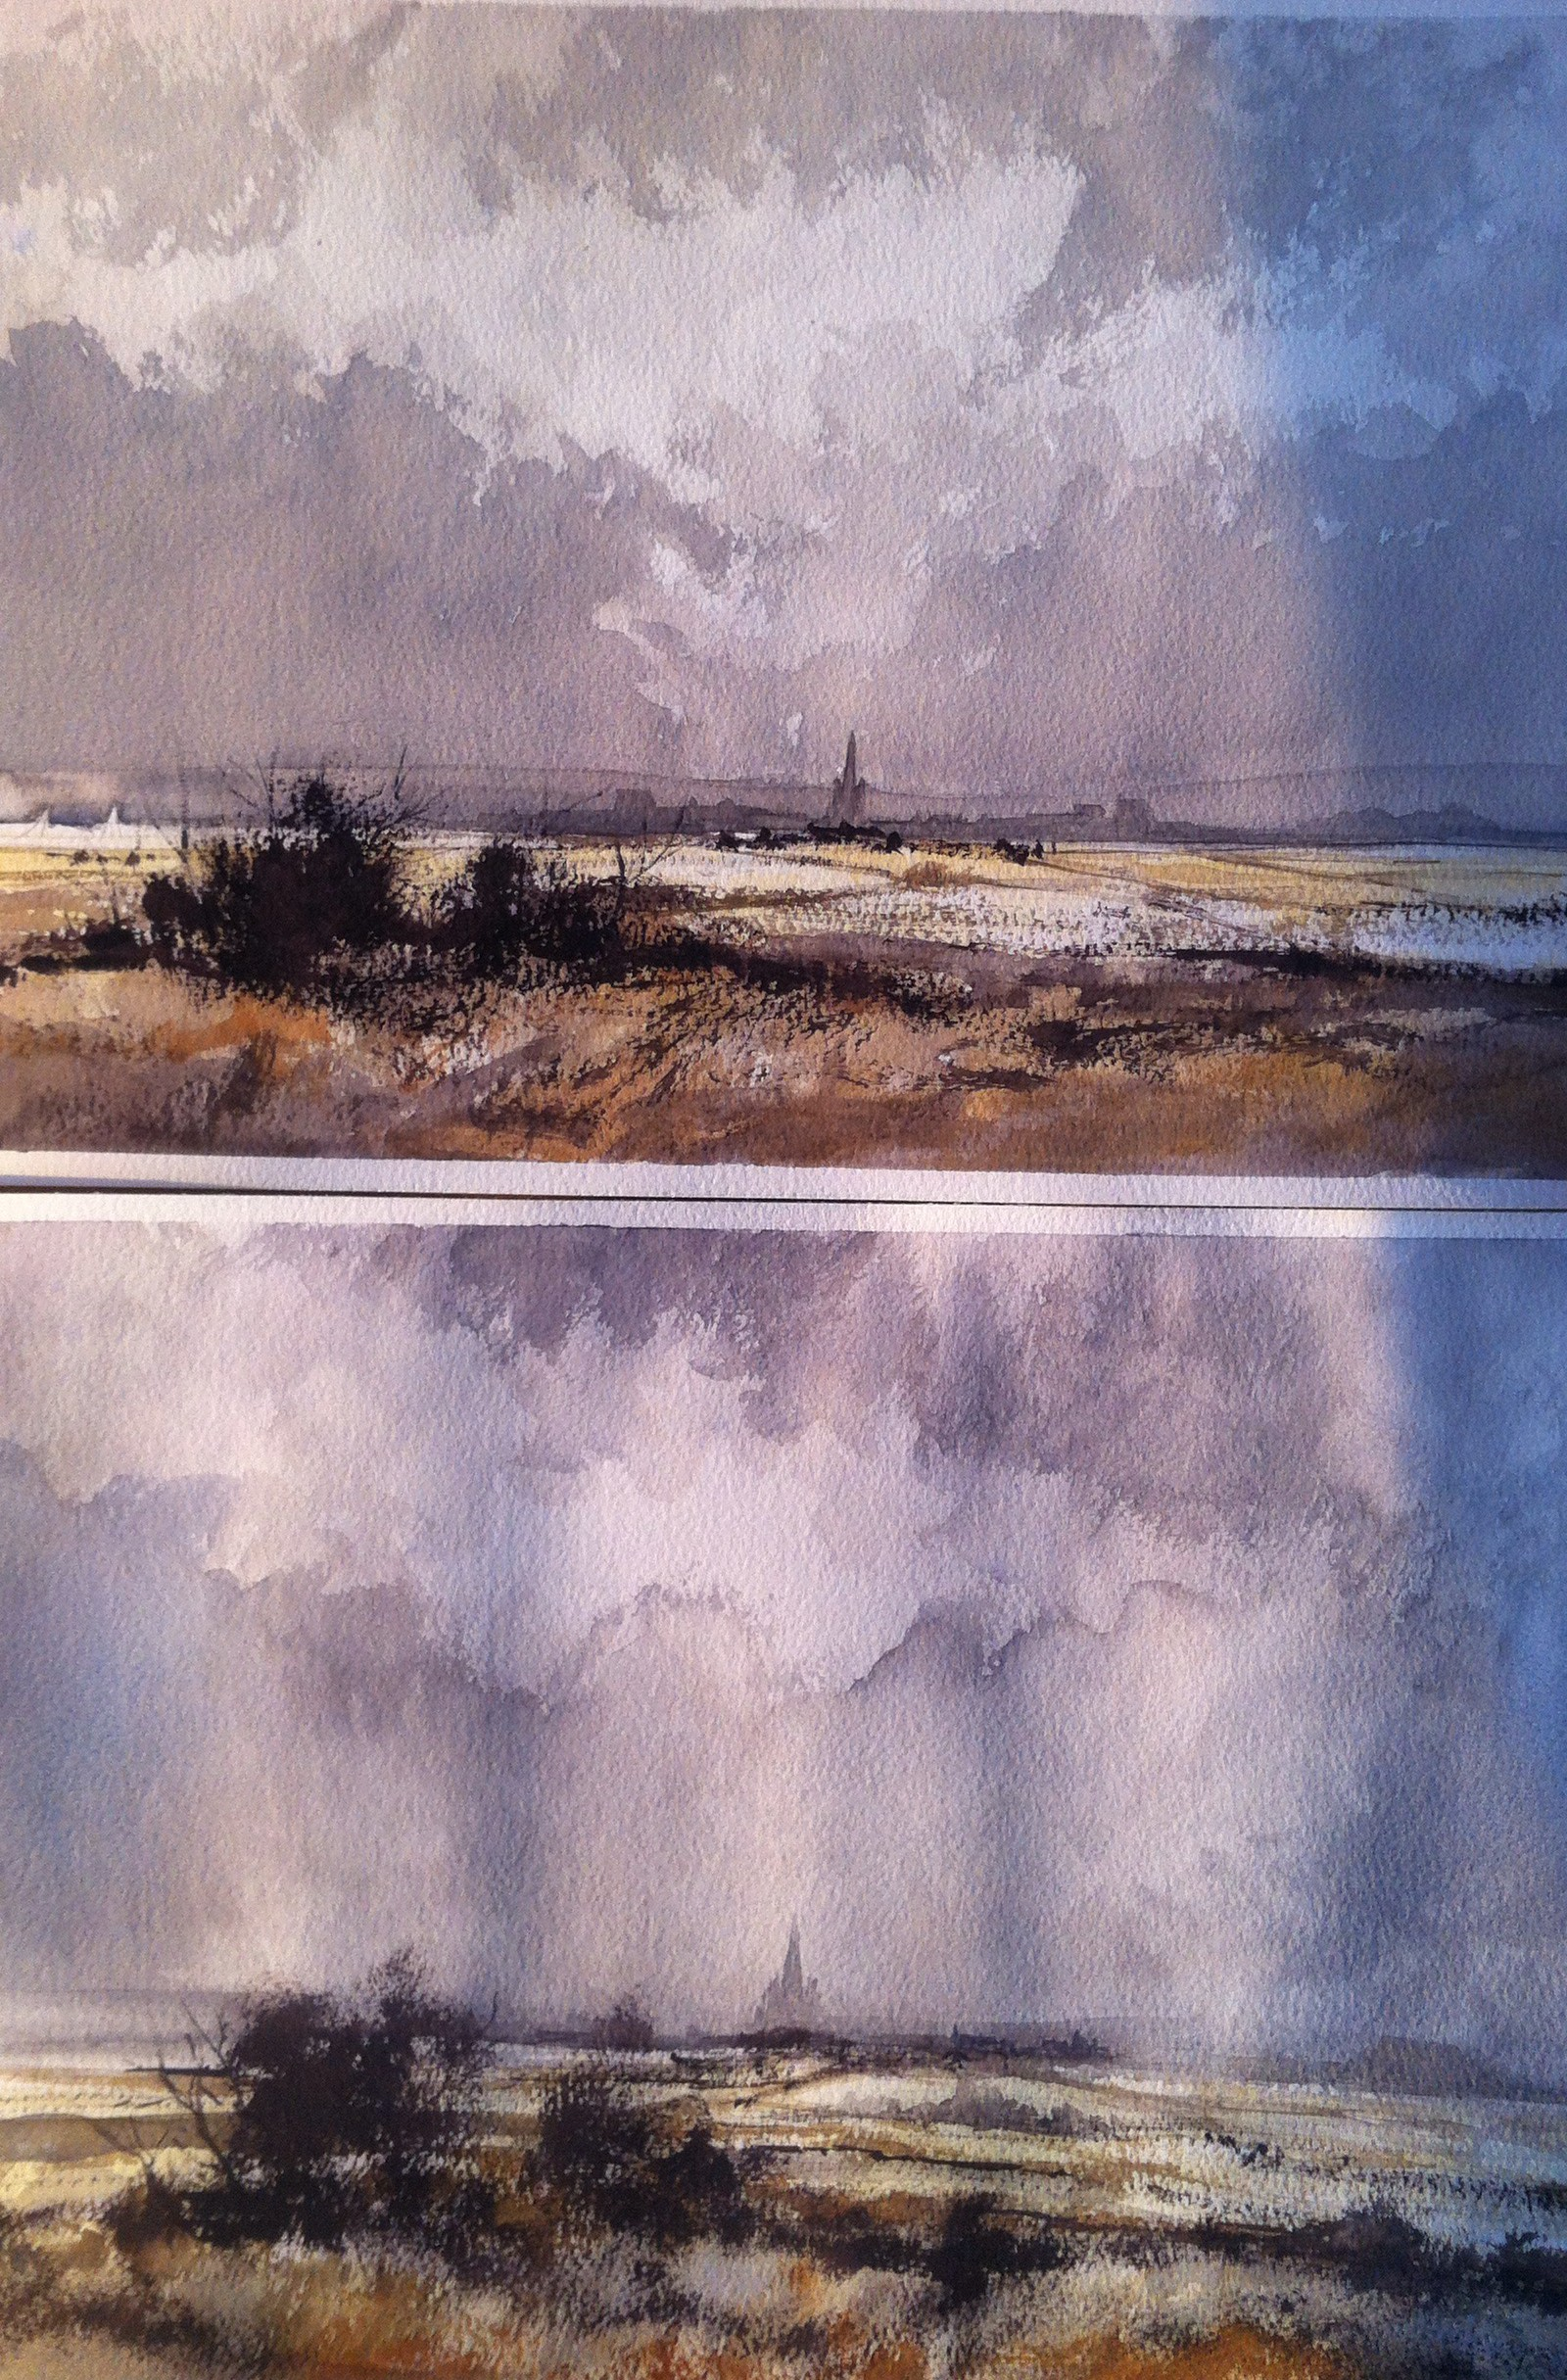 Rowland Hilder studies: #2 painted using Winsor and Newton professional watercolours, #1 using Winsor and Newton Cotman watercolours